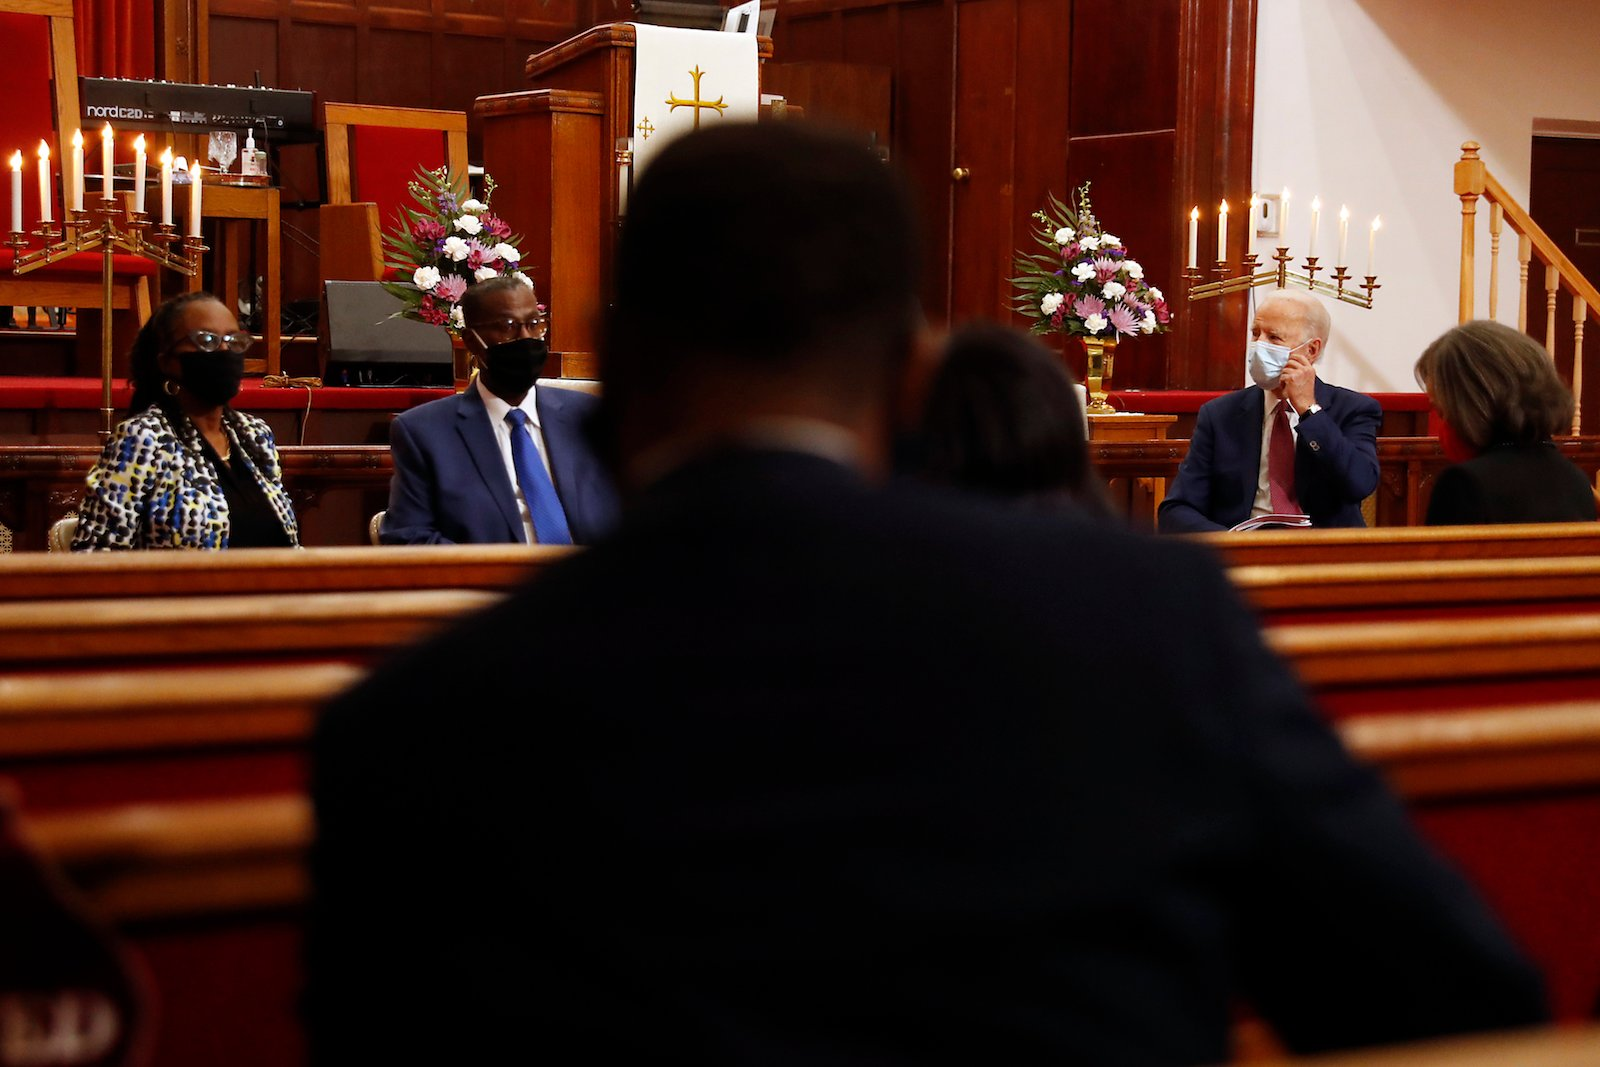 Biden taps Delaware AME pastor to offer benediction at inauguration